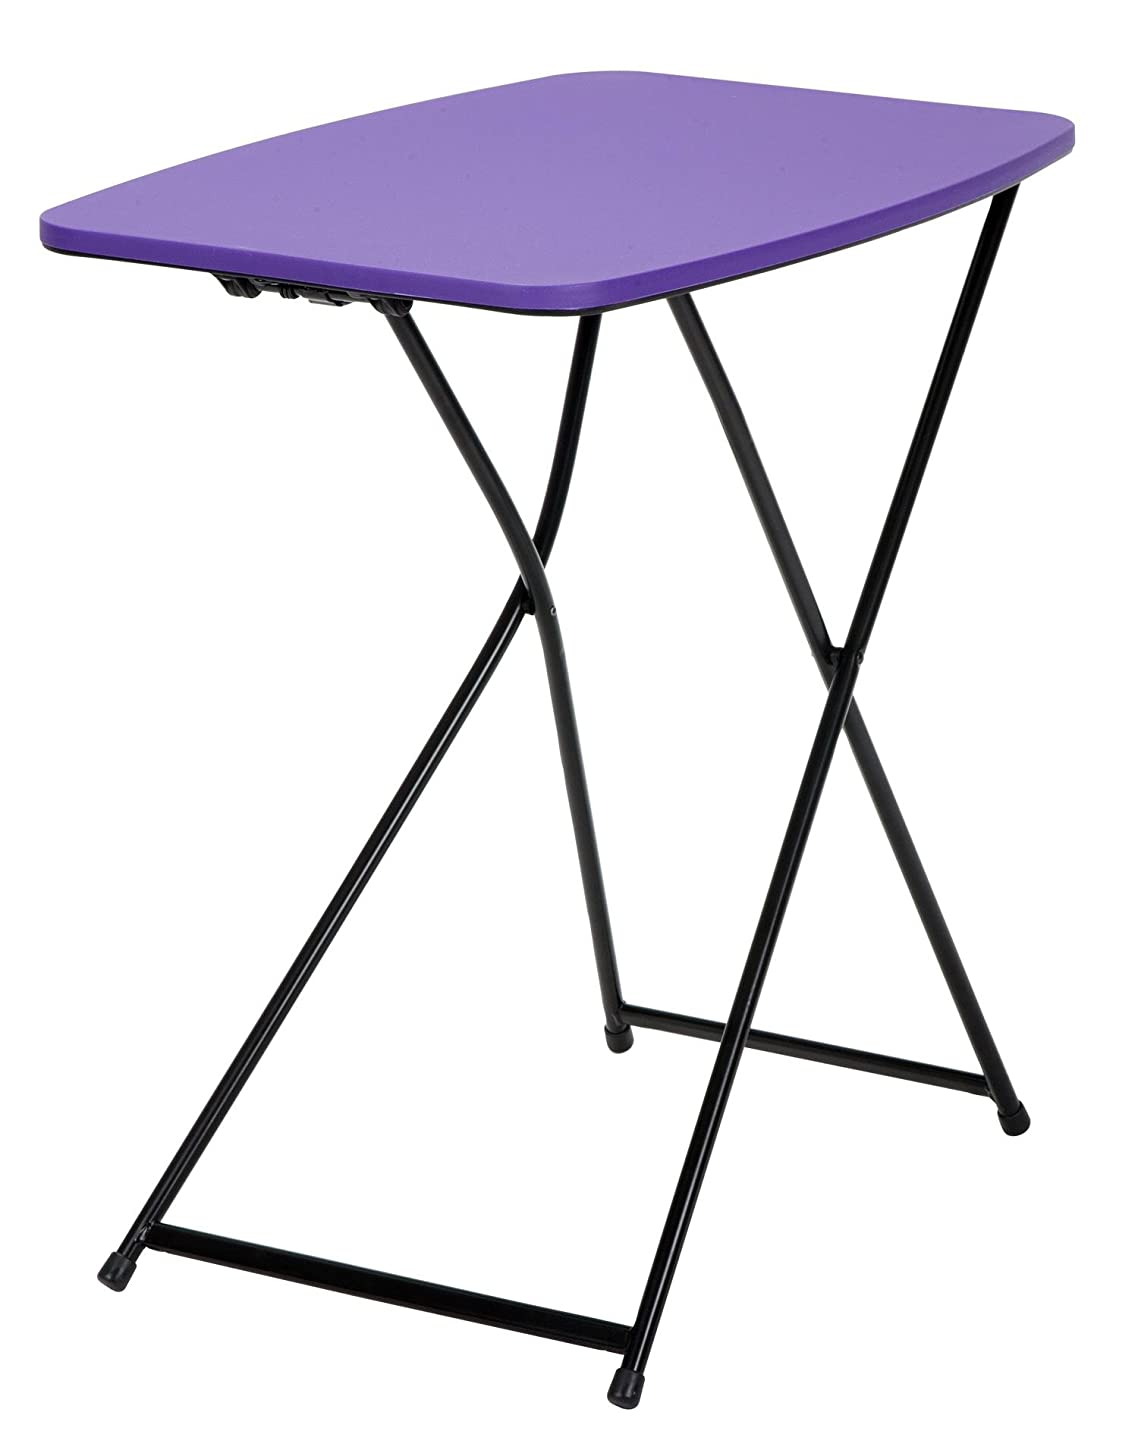 """COSCO 18"""" x 26"""" Indoor Outdoor Adjustable Height Personal Folding Tailgate Table, Purple, 2-pack"""